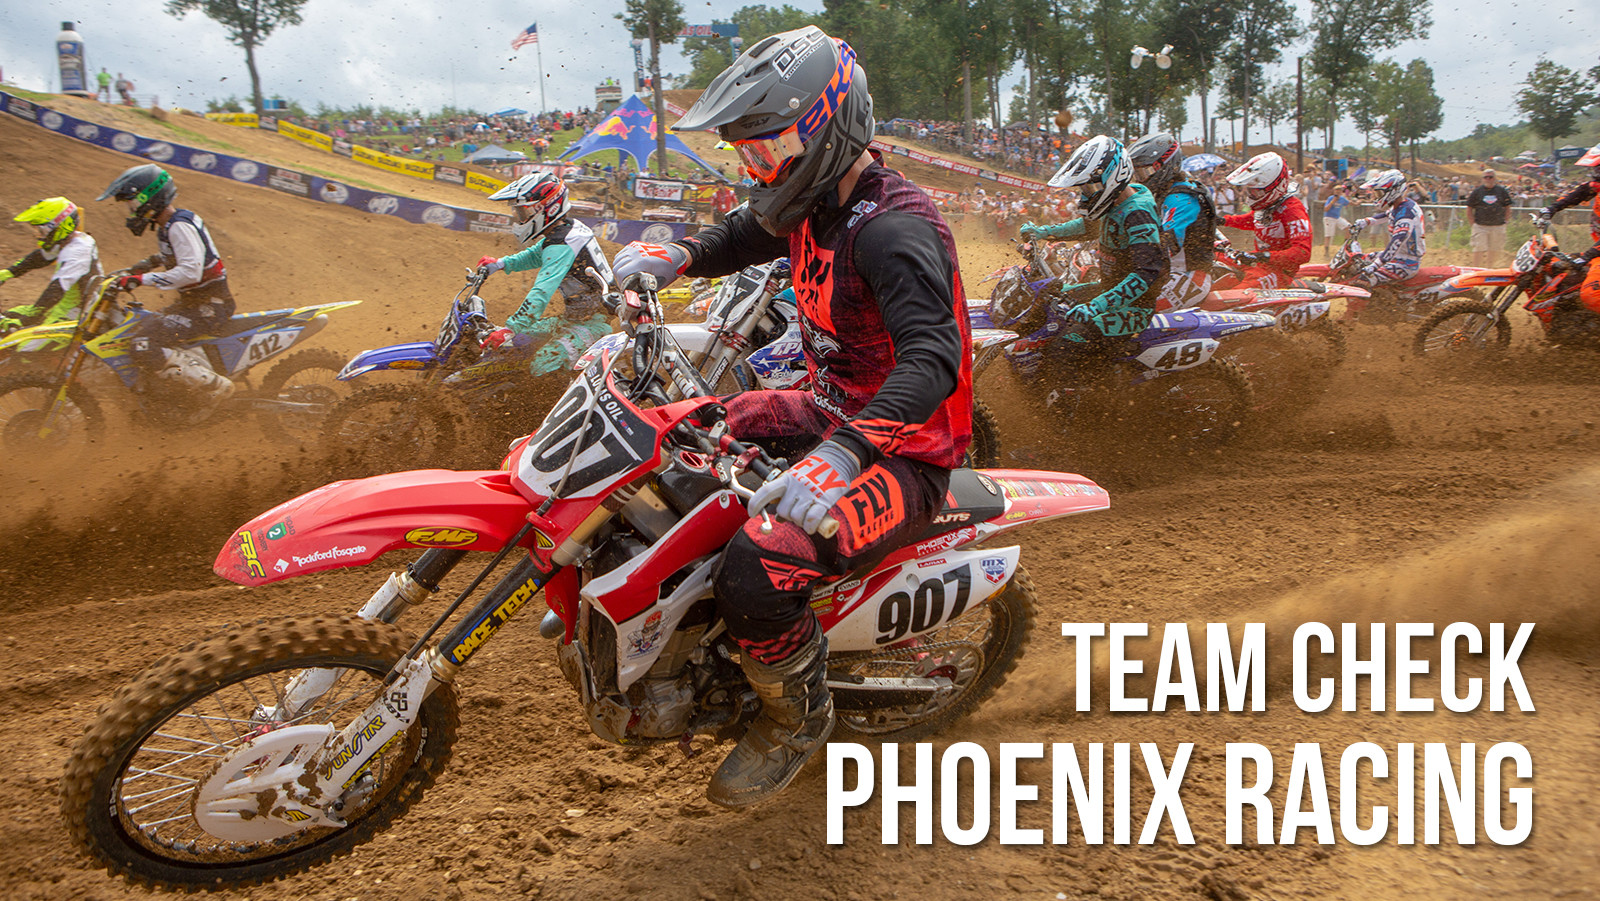 Team Check: Phoenix Racing